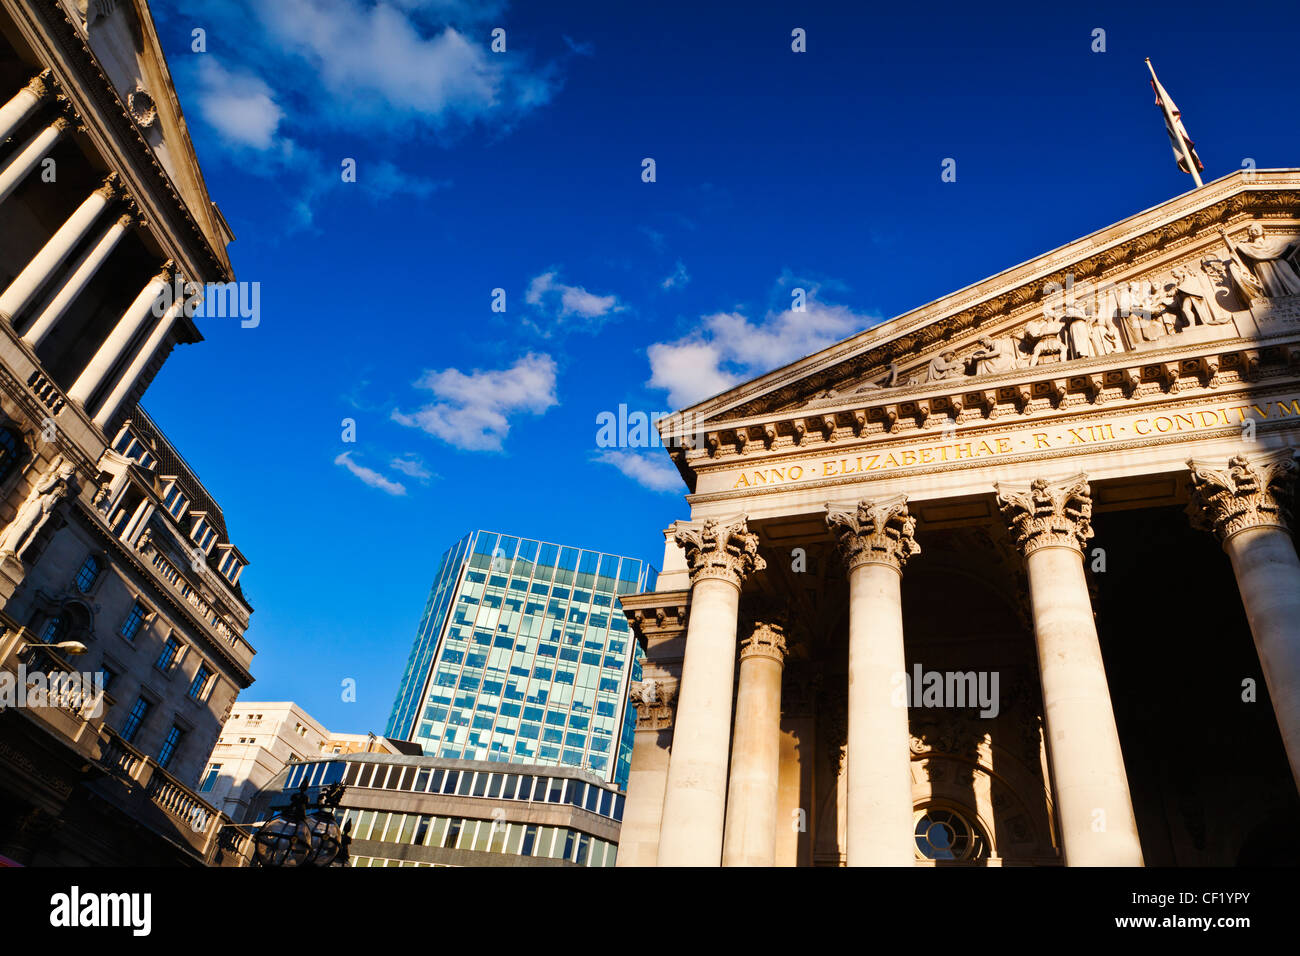 The portico over the main entrance to the Royal Exchange in the City of London. The Royal Exchange reopened in 2001 - Stock Image